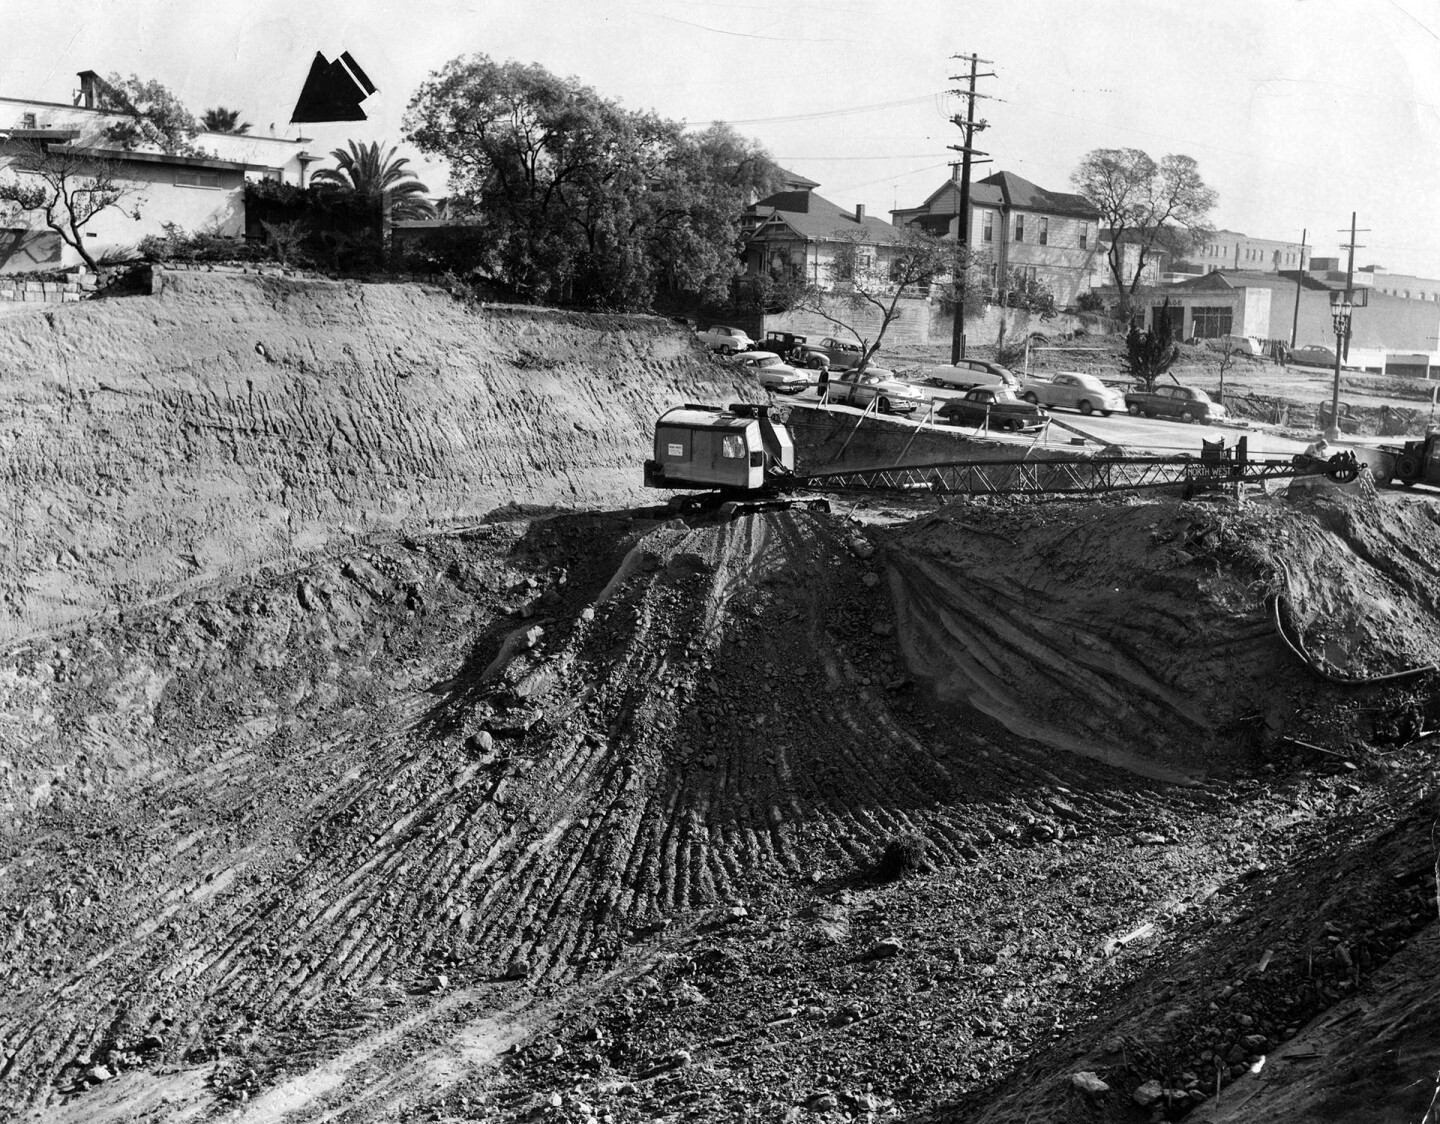 Workers carve a road cut for Fourth Street into Bunker Hill in 1954. Courtesy of the Herald-Examiner Collection - Los Angeles Public Library.